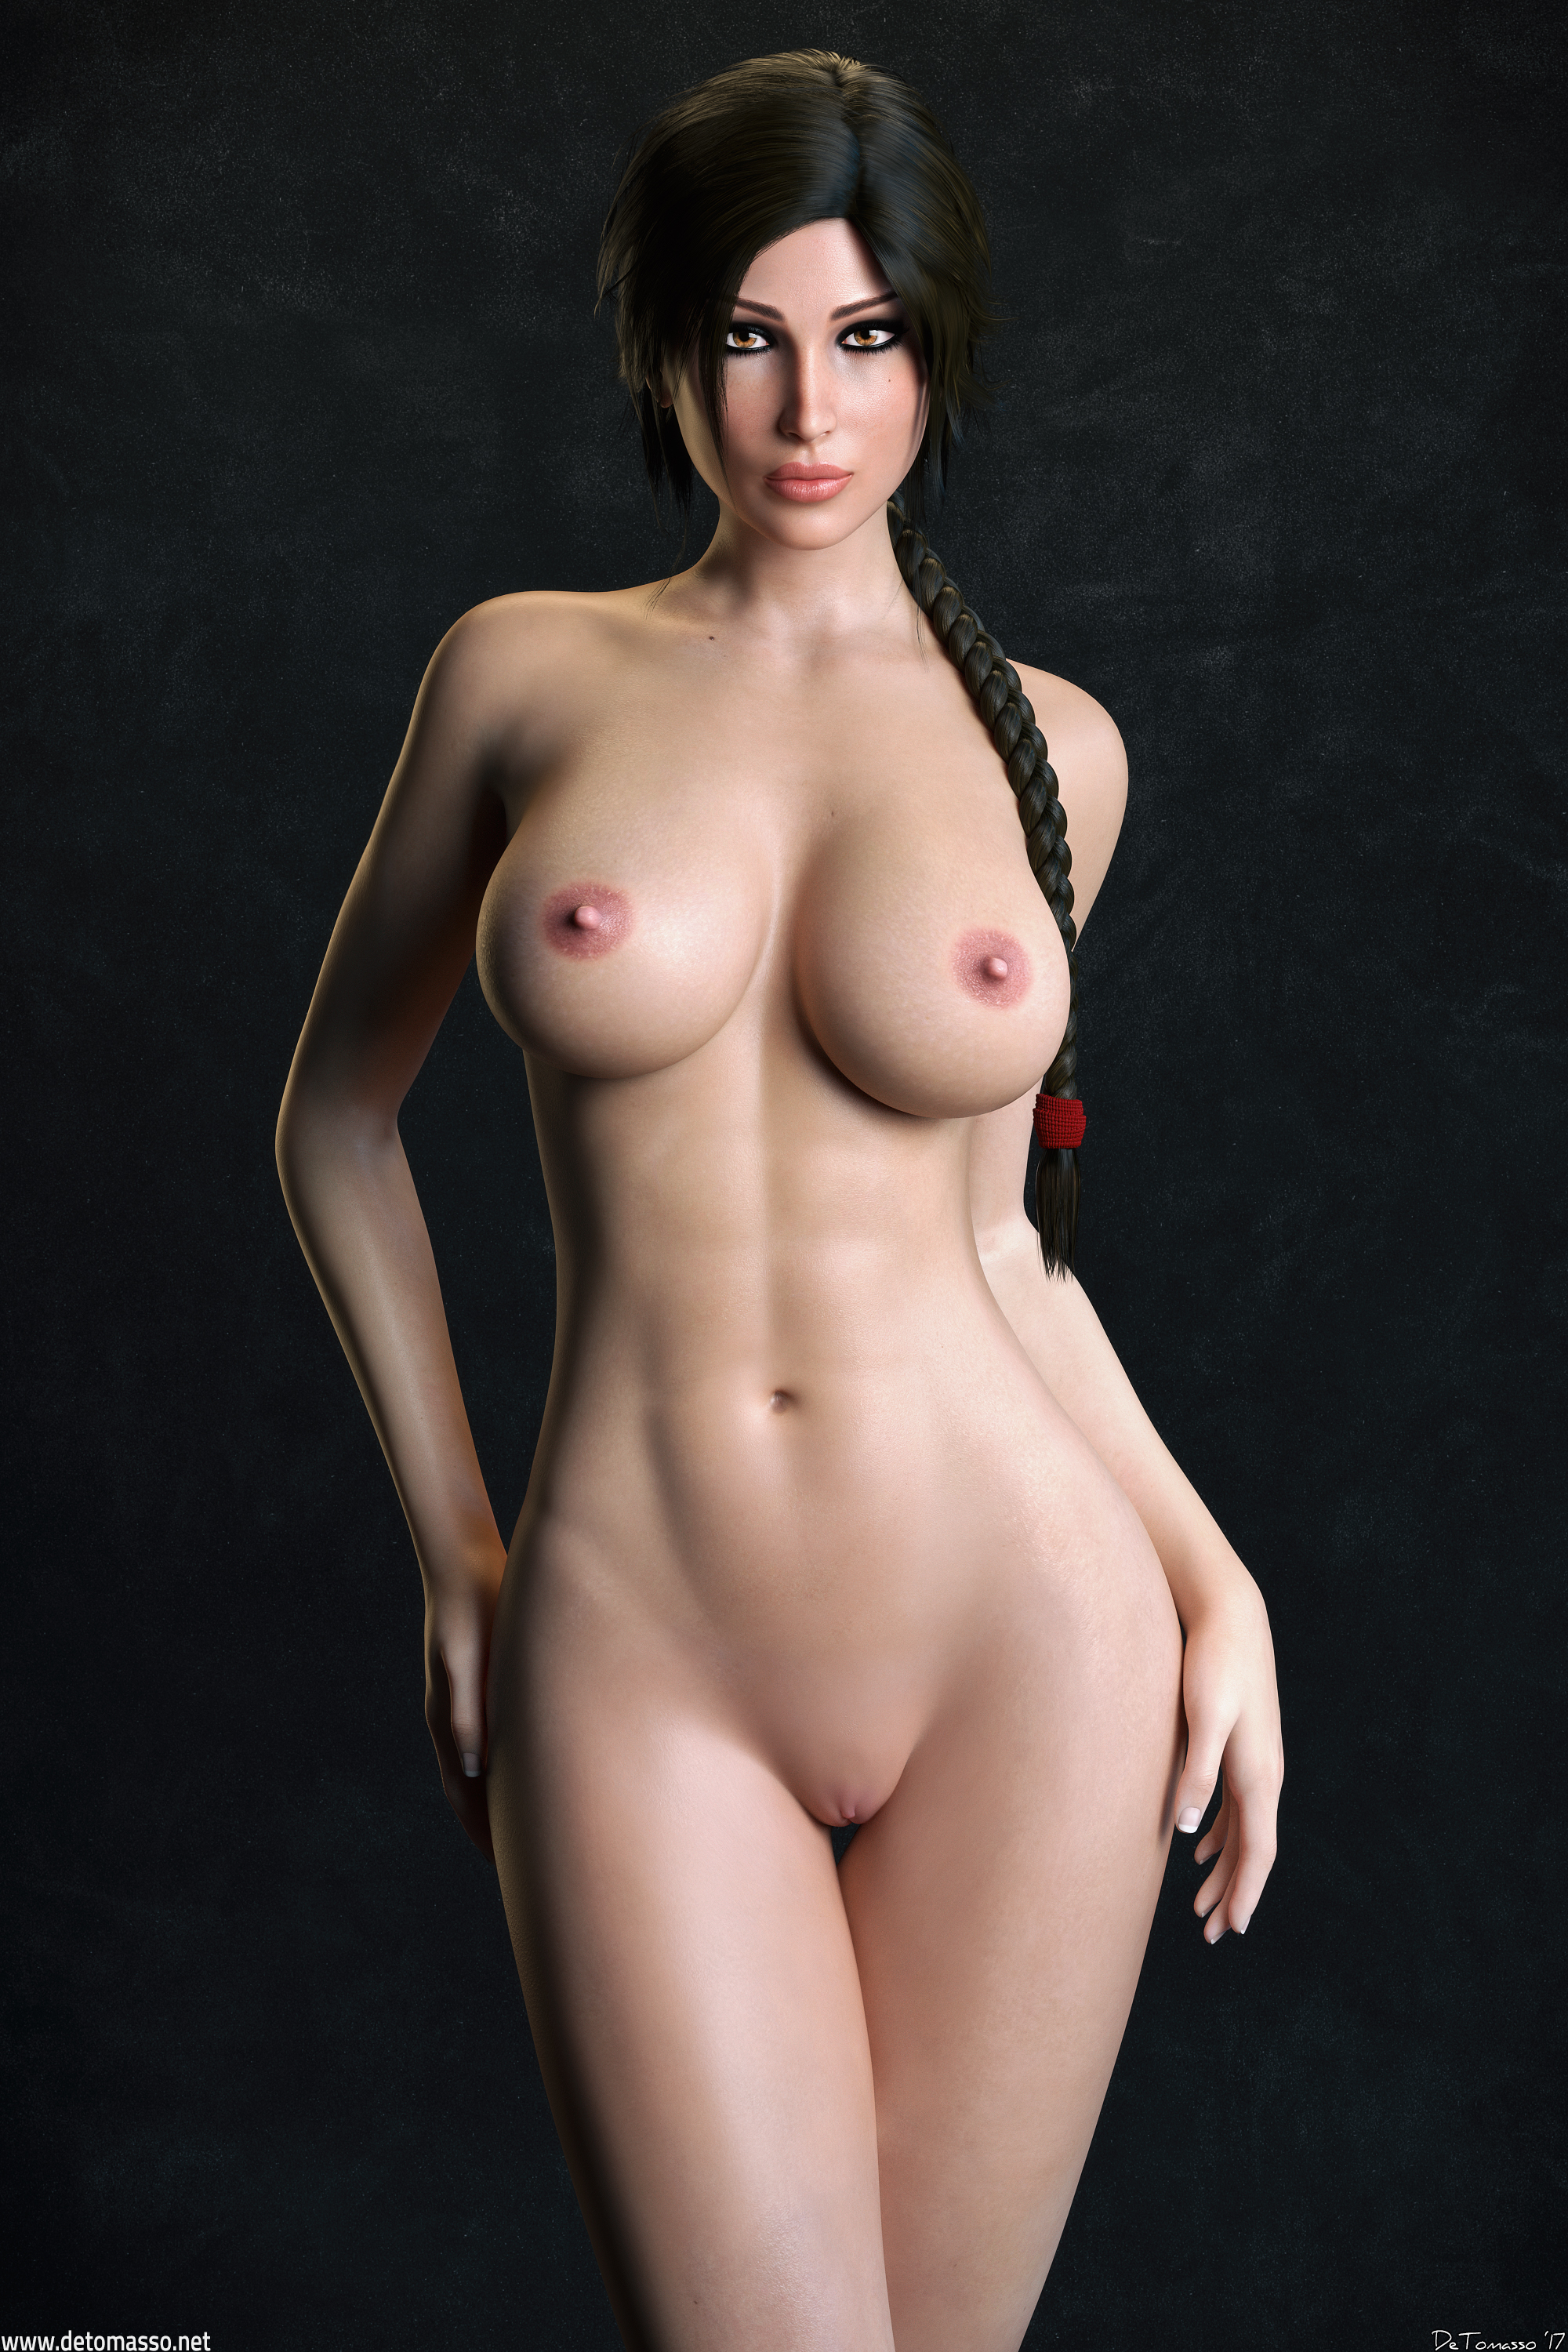 For girl 3d stereoview nude confirm